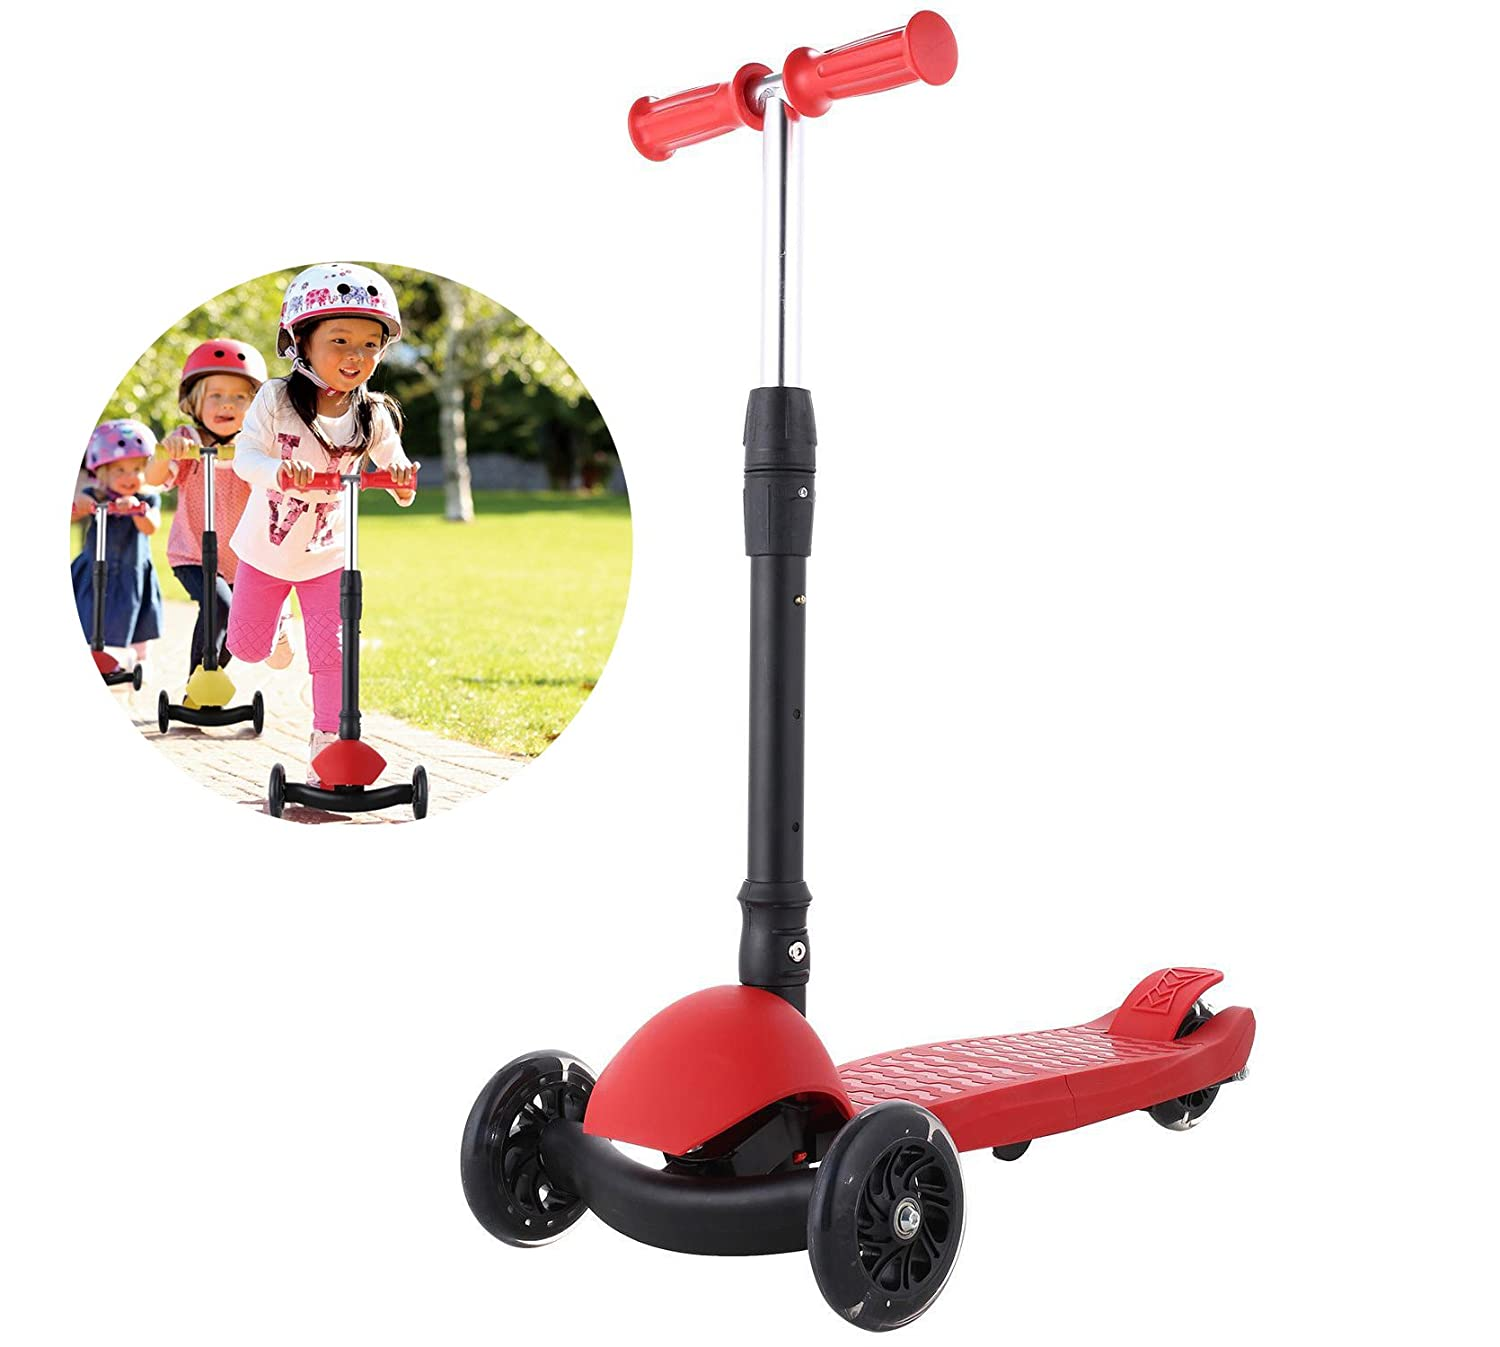 Mewalker 3 Wheel Kick Scooter Adjustable Height Mini Scooter Foldable Scooters With LED Flash Up Wheels For Kids Child Children Boys Girls Play Outdoor?Max Weight is 50kg/110lbs,US STOCK?